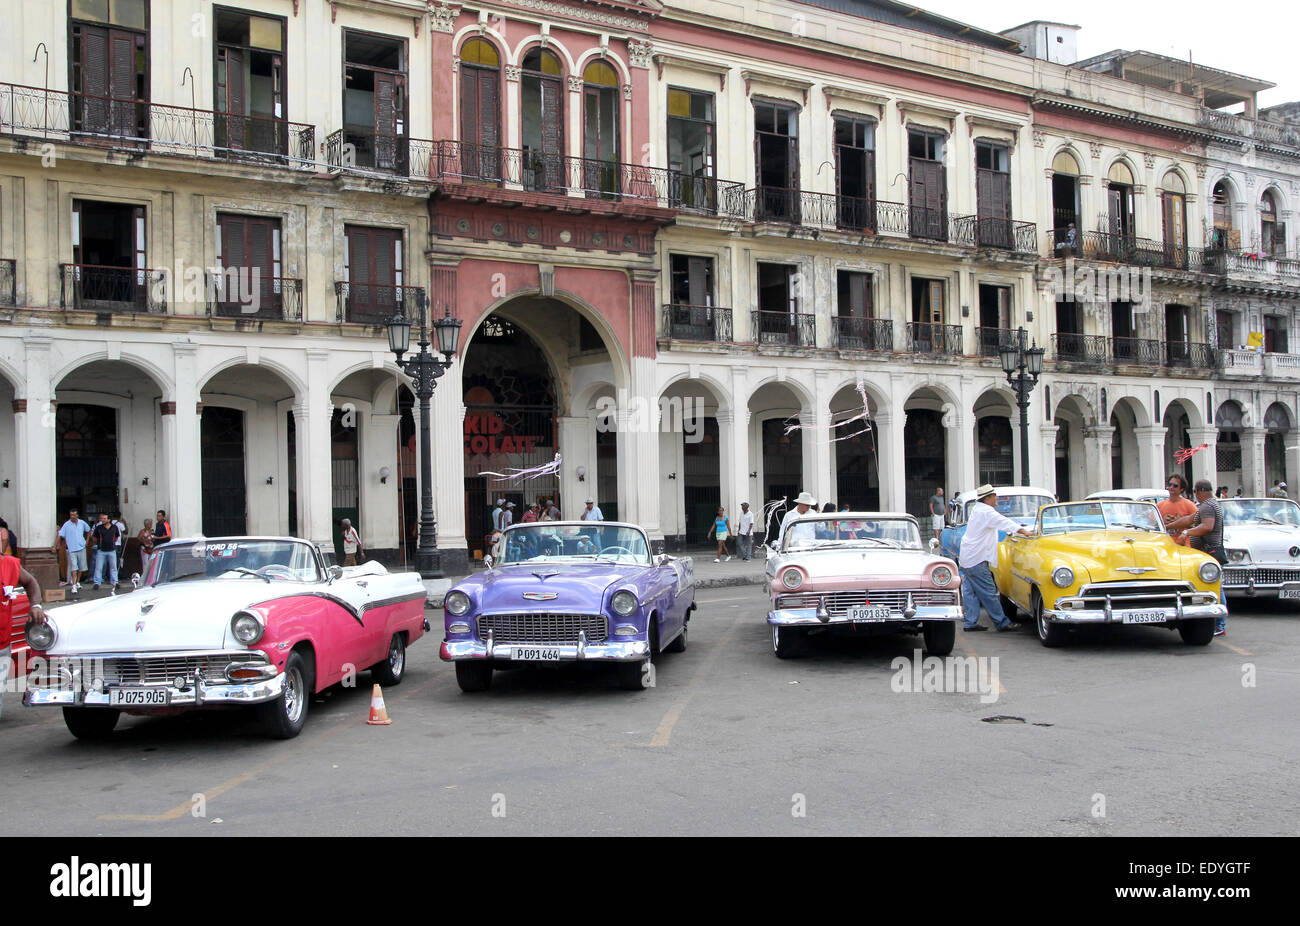 Old Buildings and Cars Havana Cuba - Stock Image